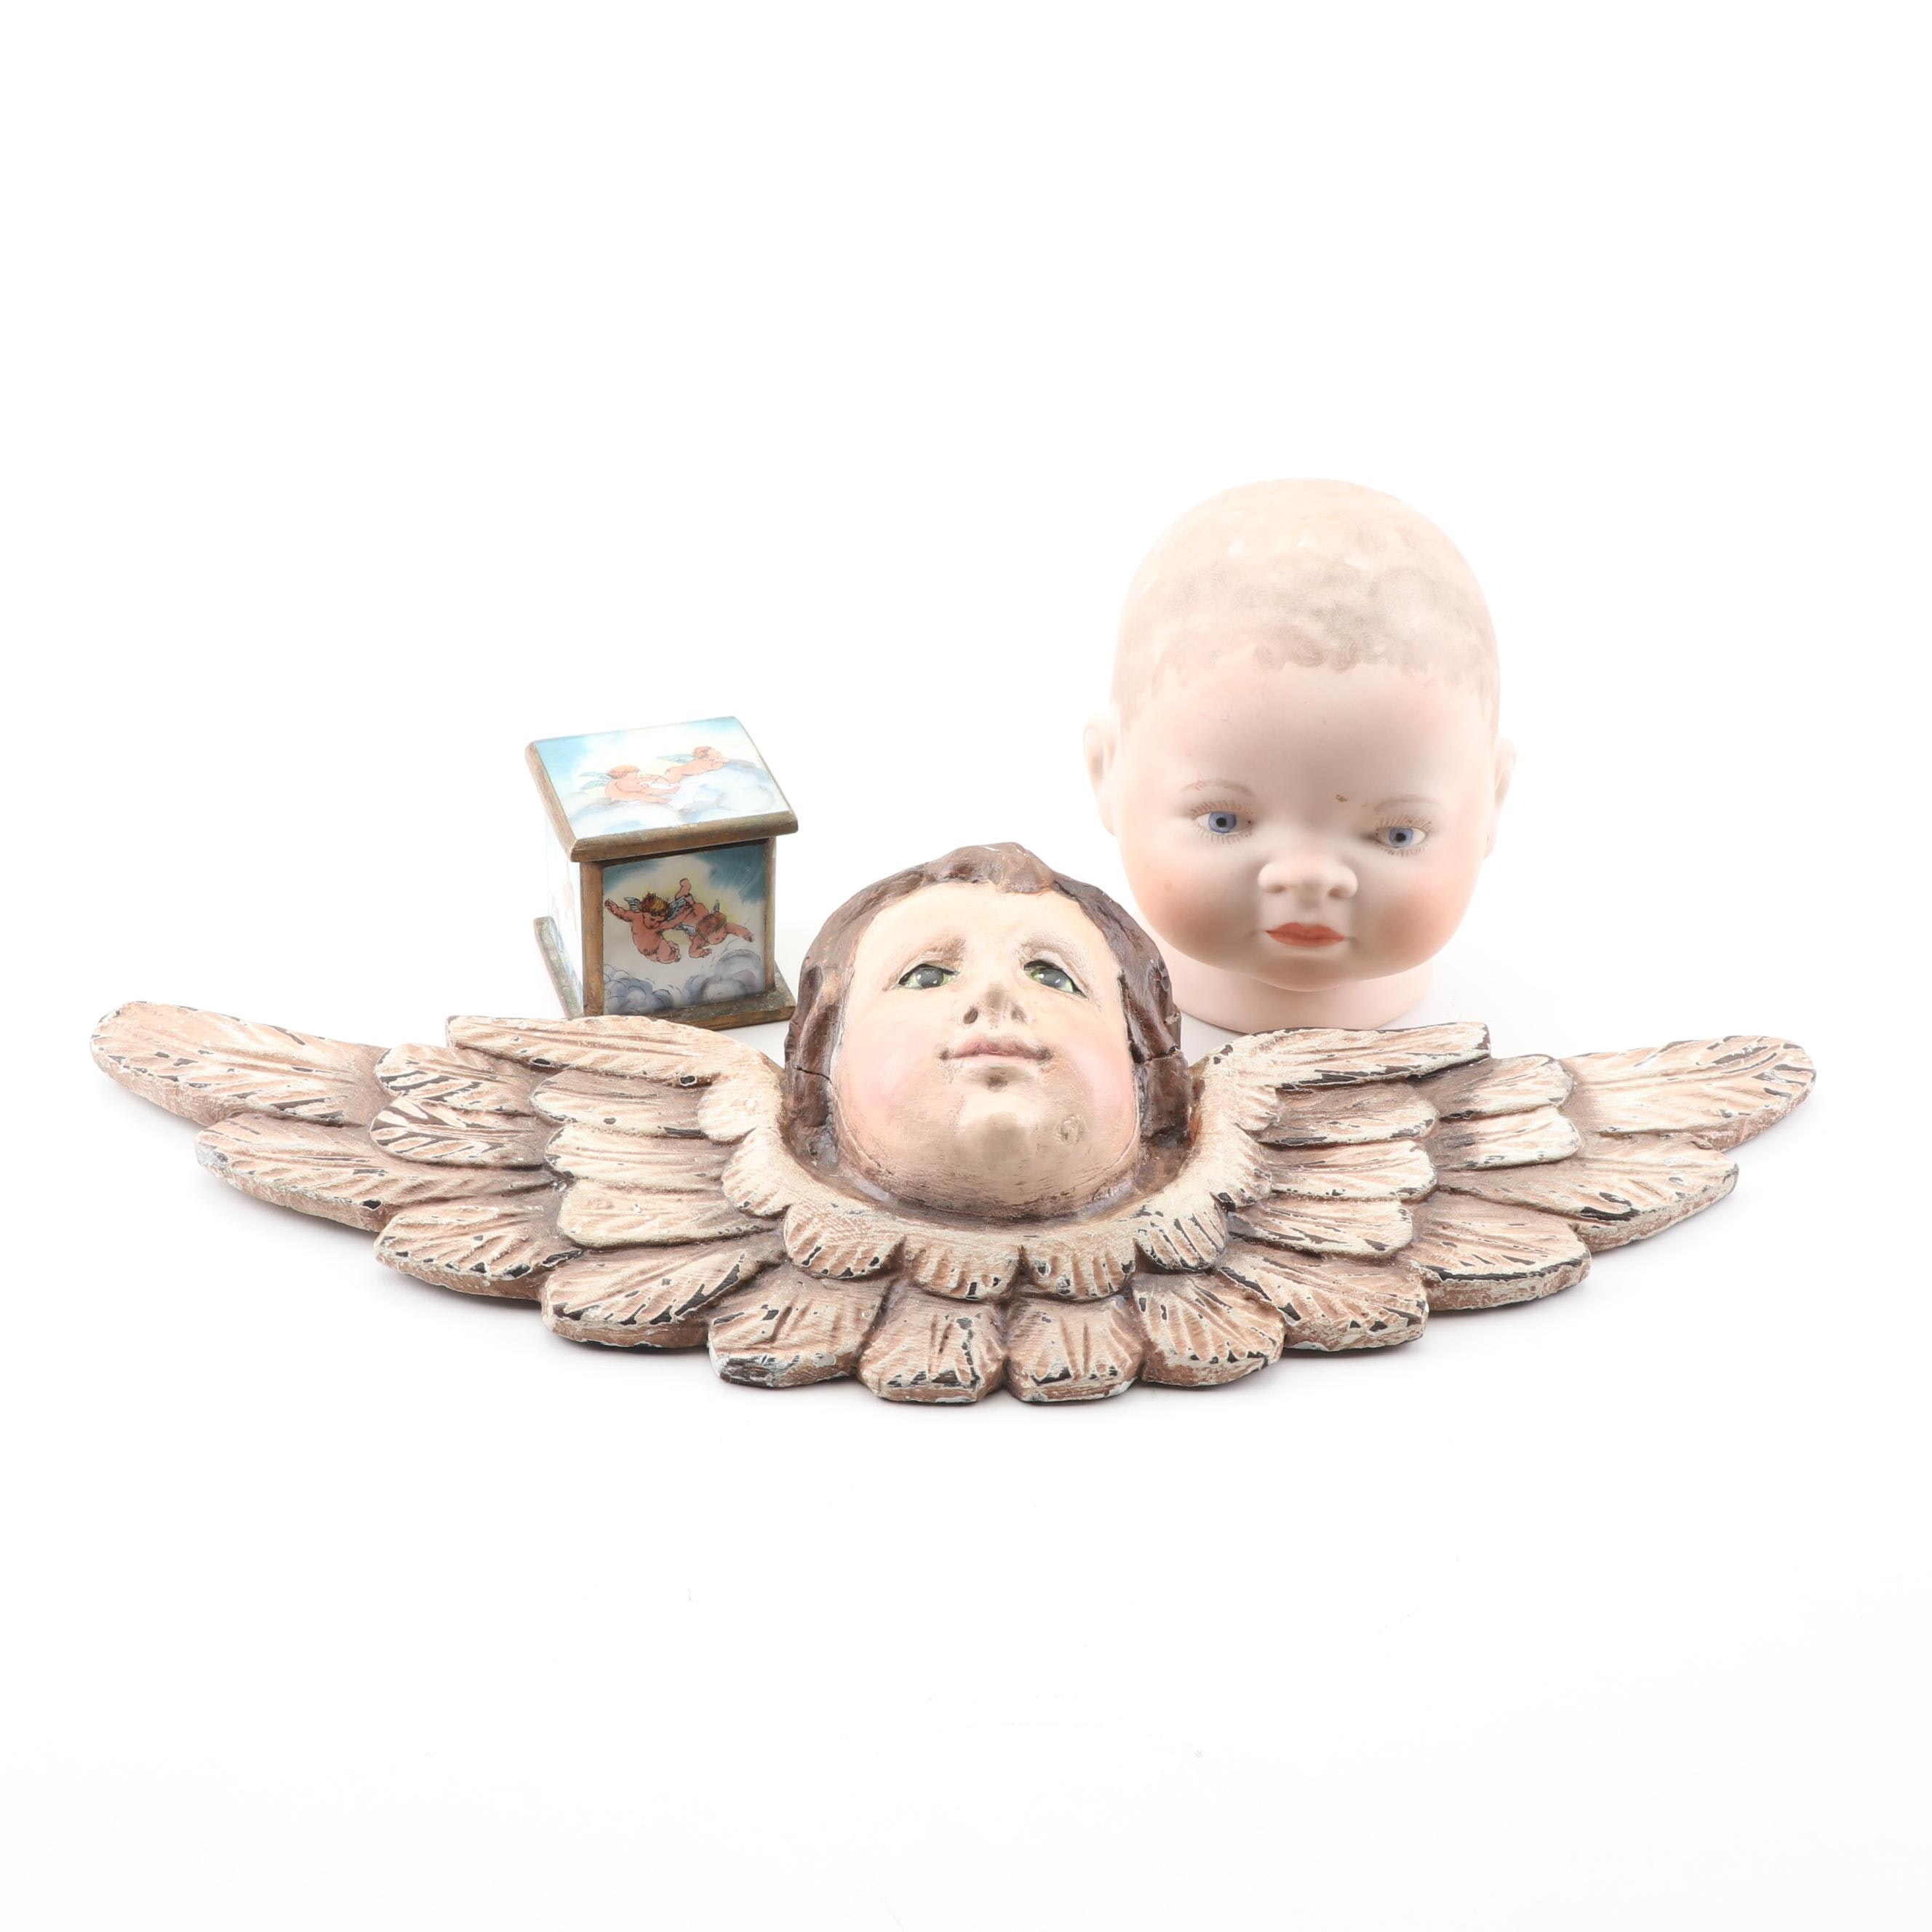 Cherub Wall Hanging, Wooden Trinket Box, and German Bisque Doll Head